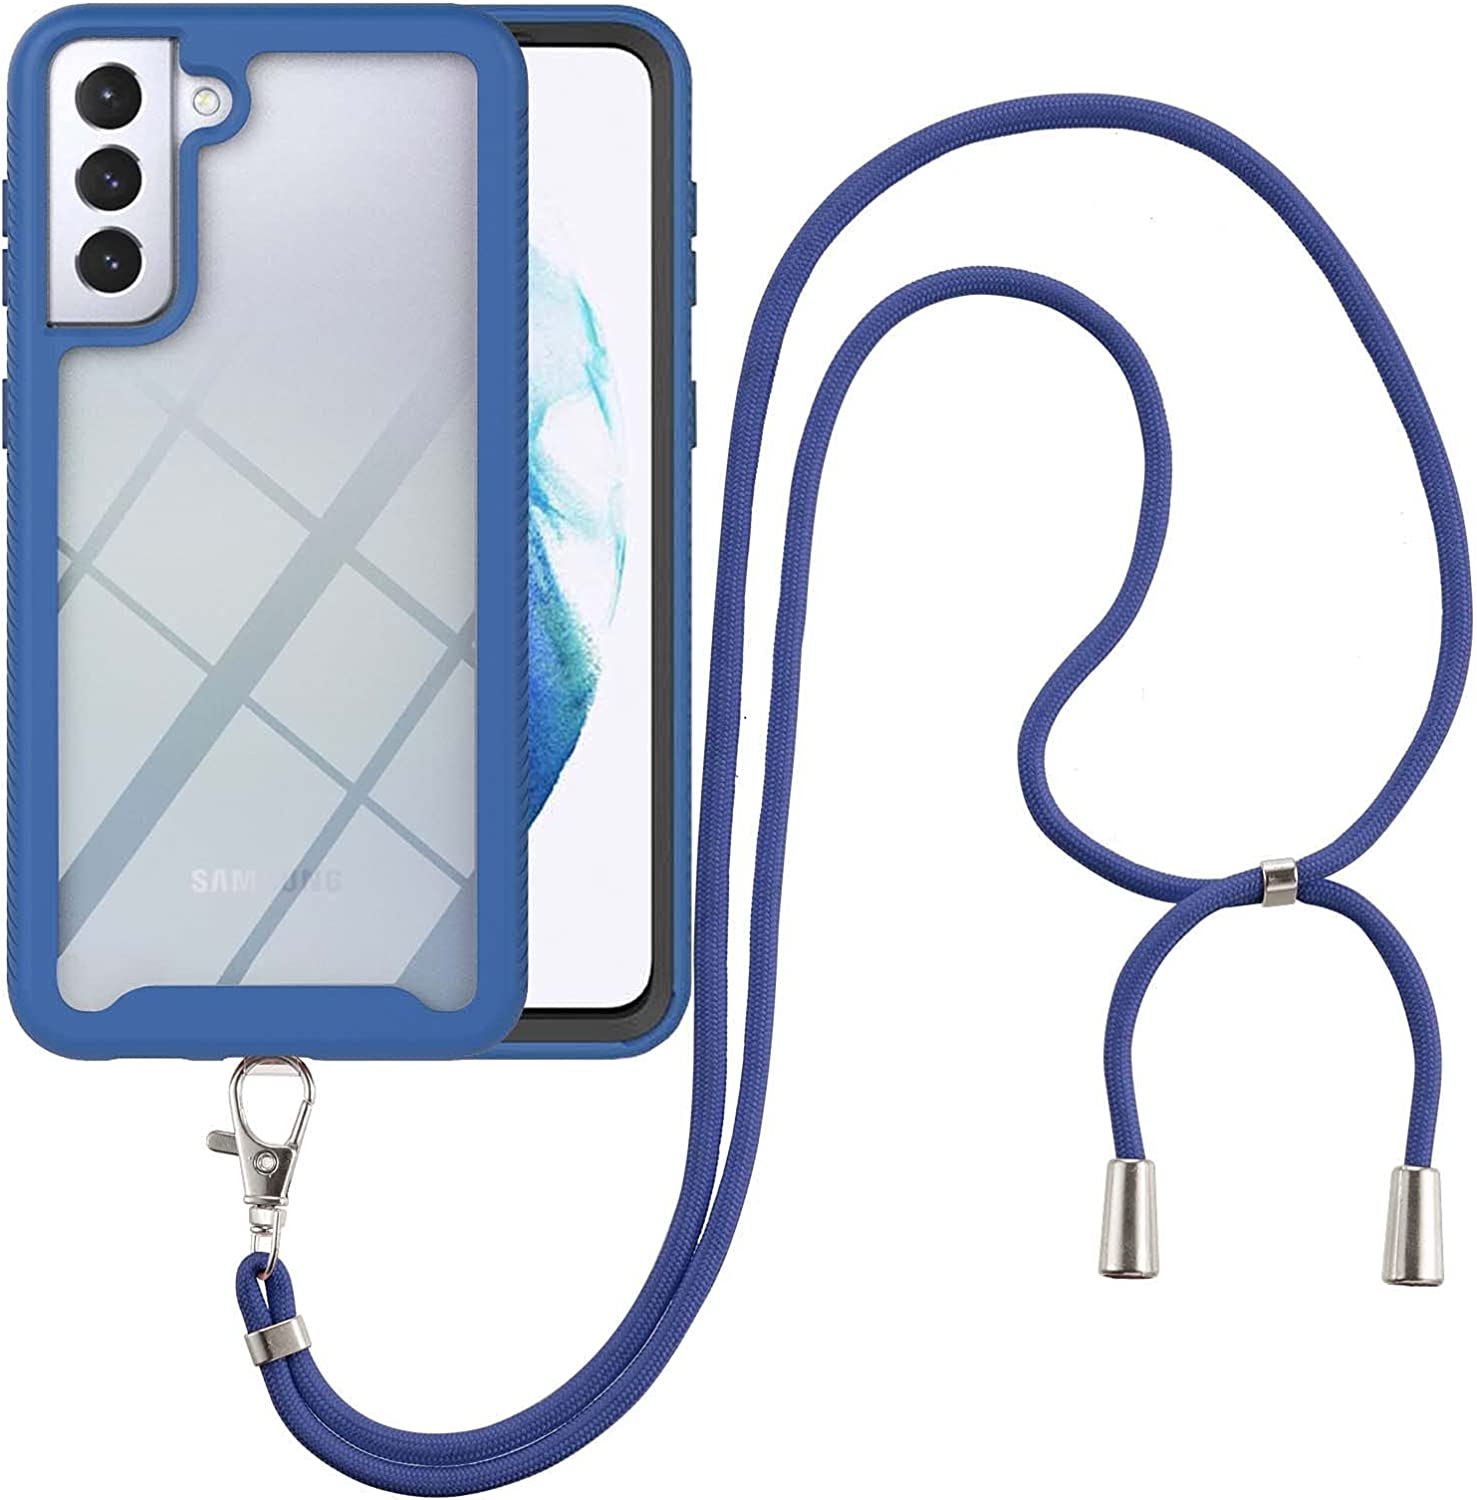 Samsung S21 Case, EabHulie Transparent Back No-Slip Bumper with Adjustable Crossbody Lanyard Strap Case, Shockproof Full Body Protection Cover for Samsung Galaxy S21 Blue